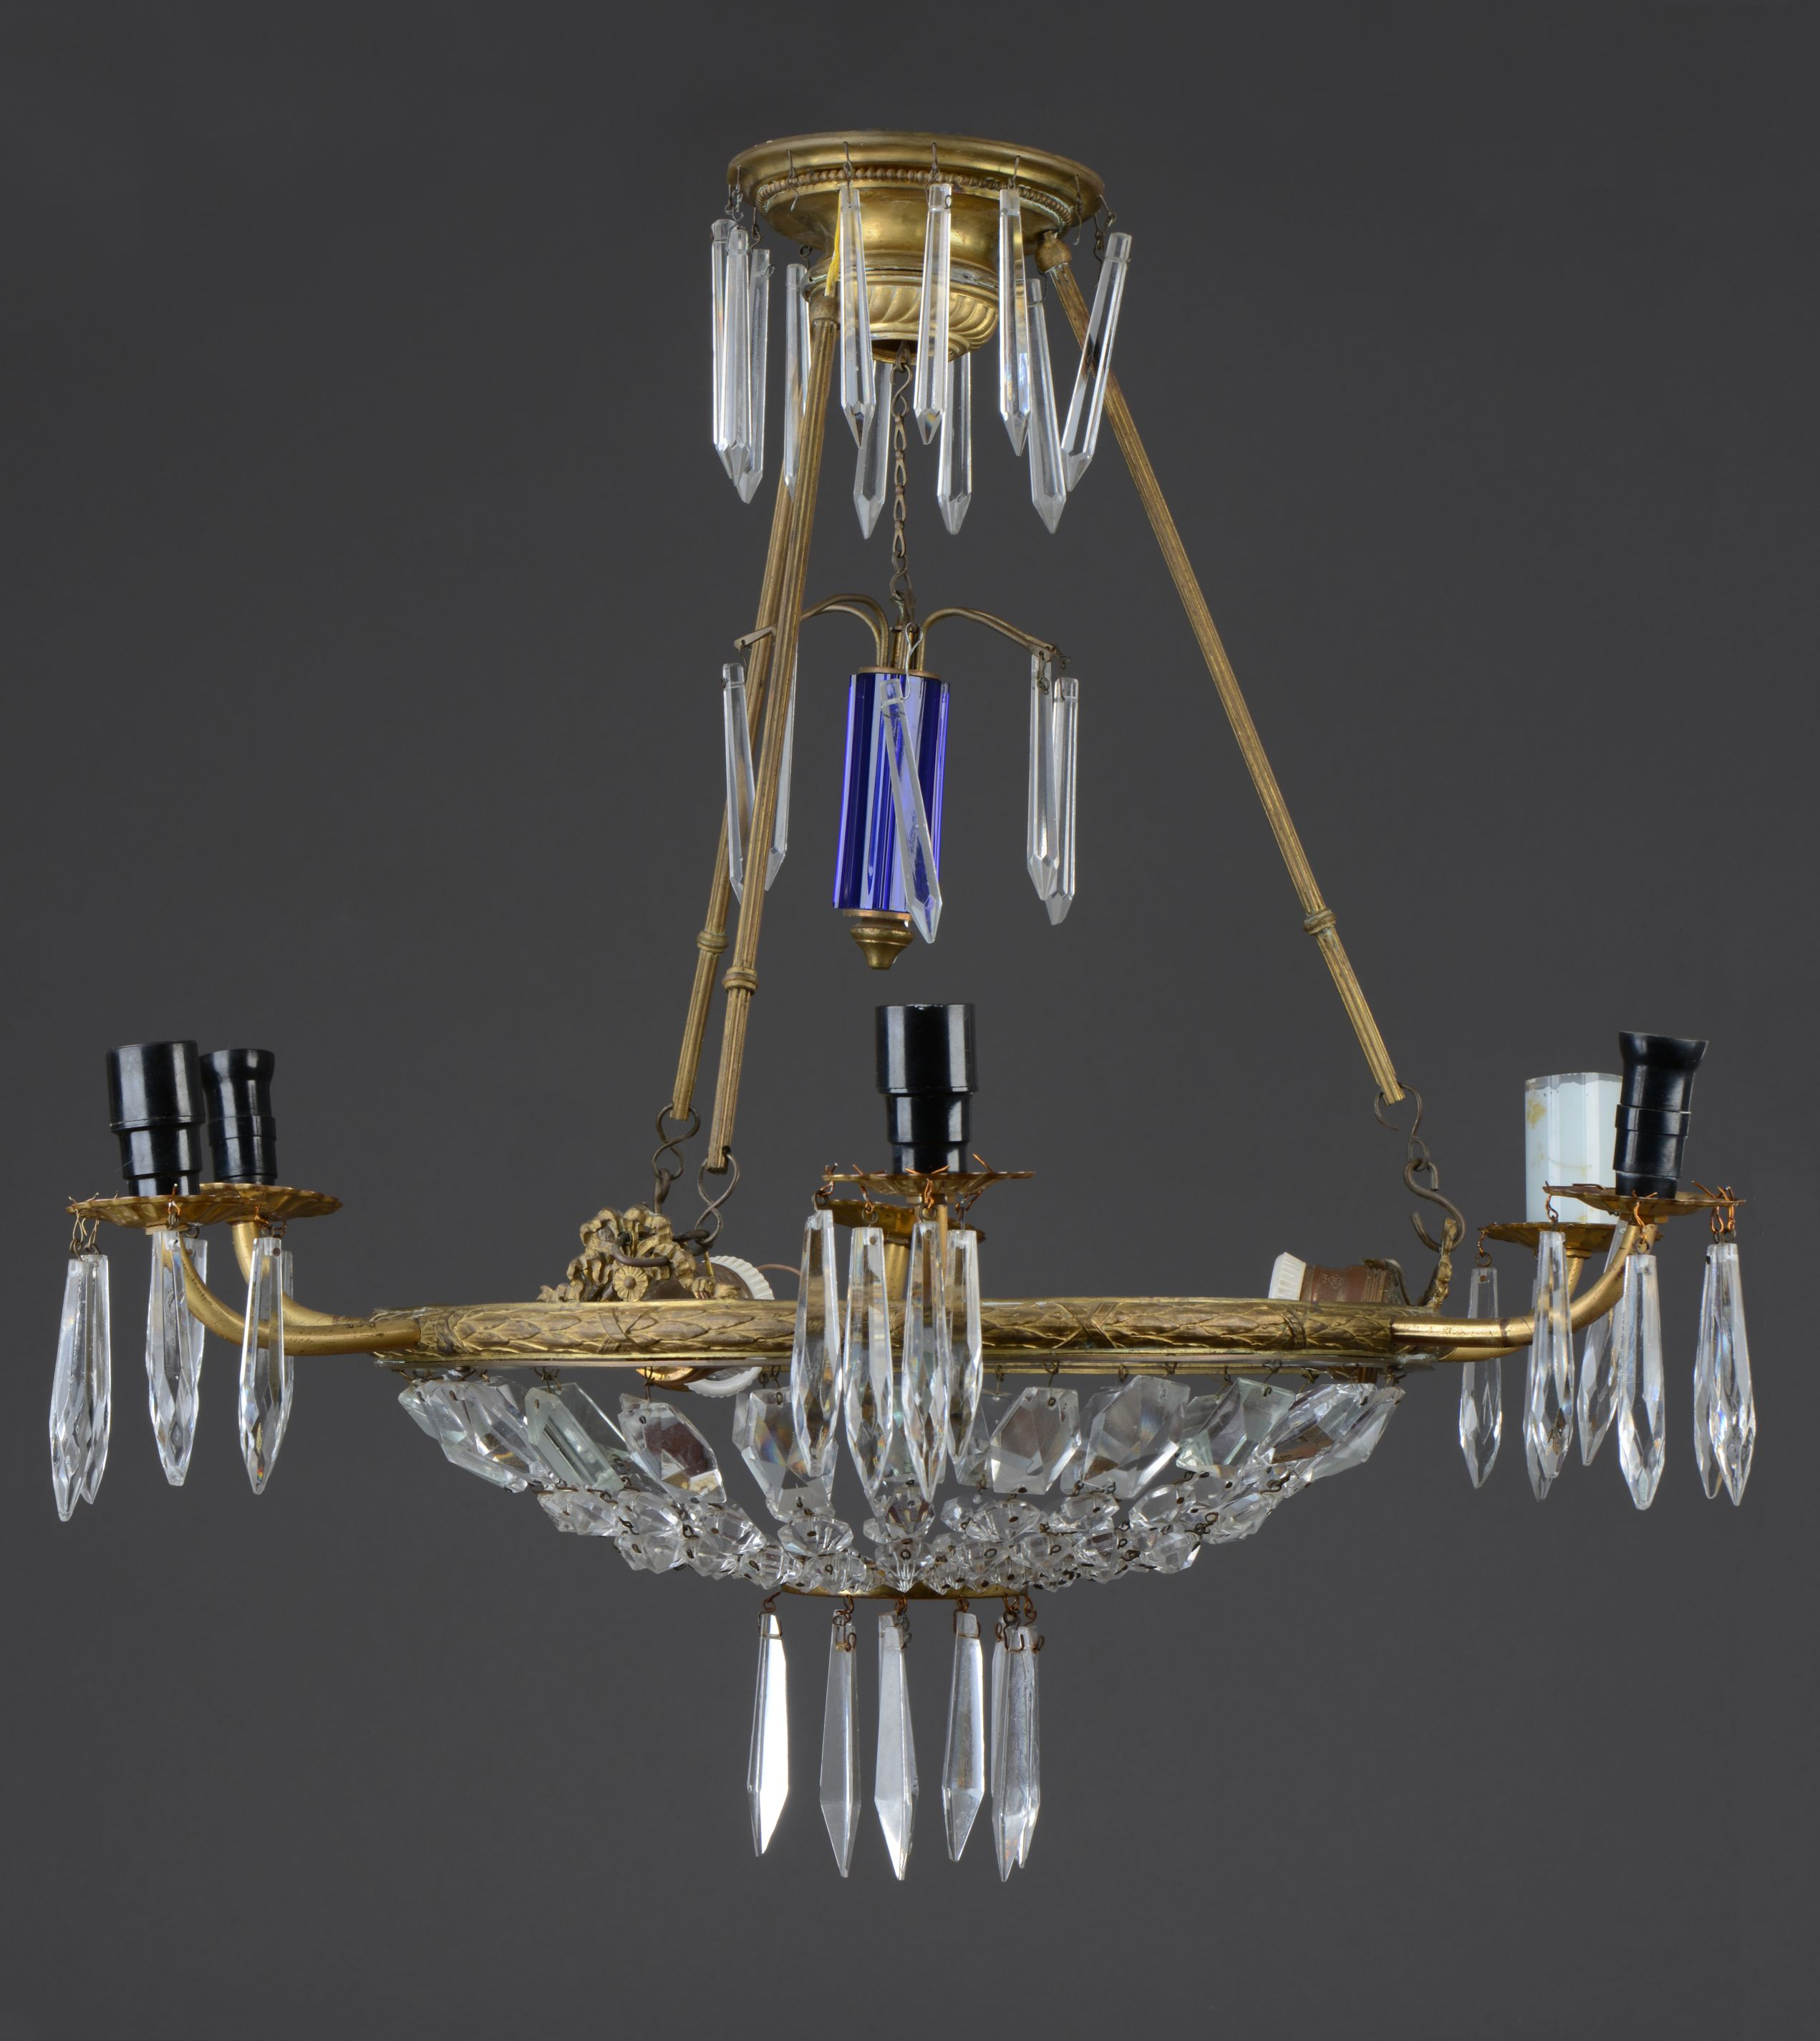 Chandelier, 1837–1899, Trakai history museum, GEK-5696. Photo by Andrius Valužis, 2017